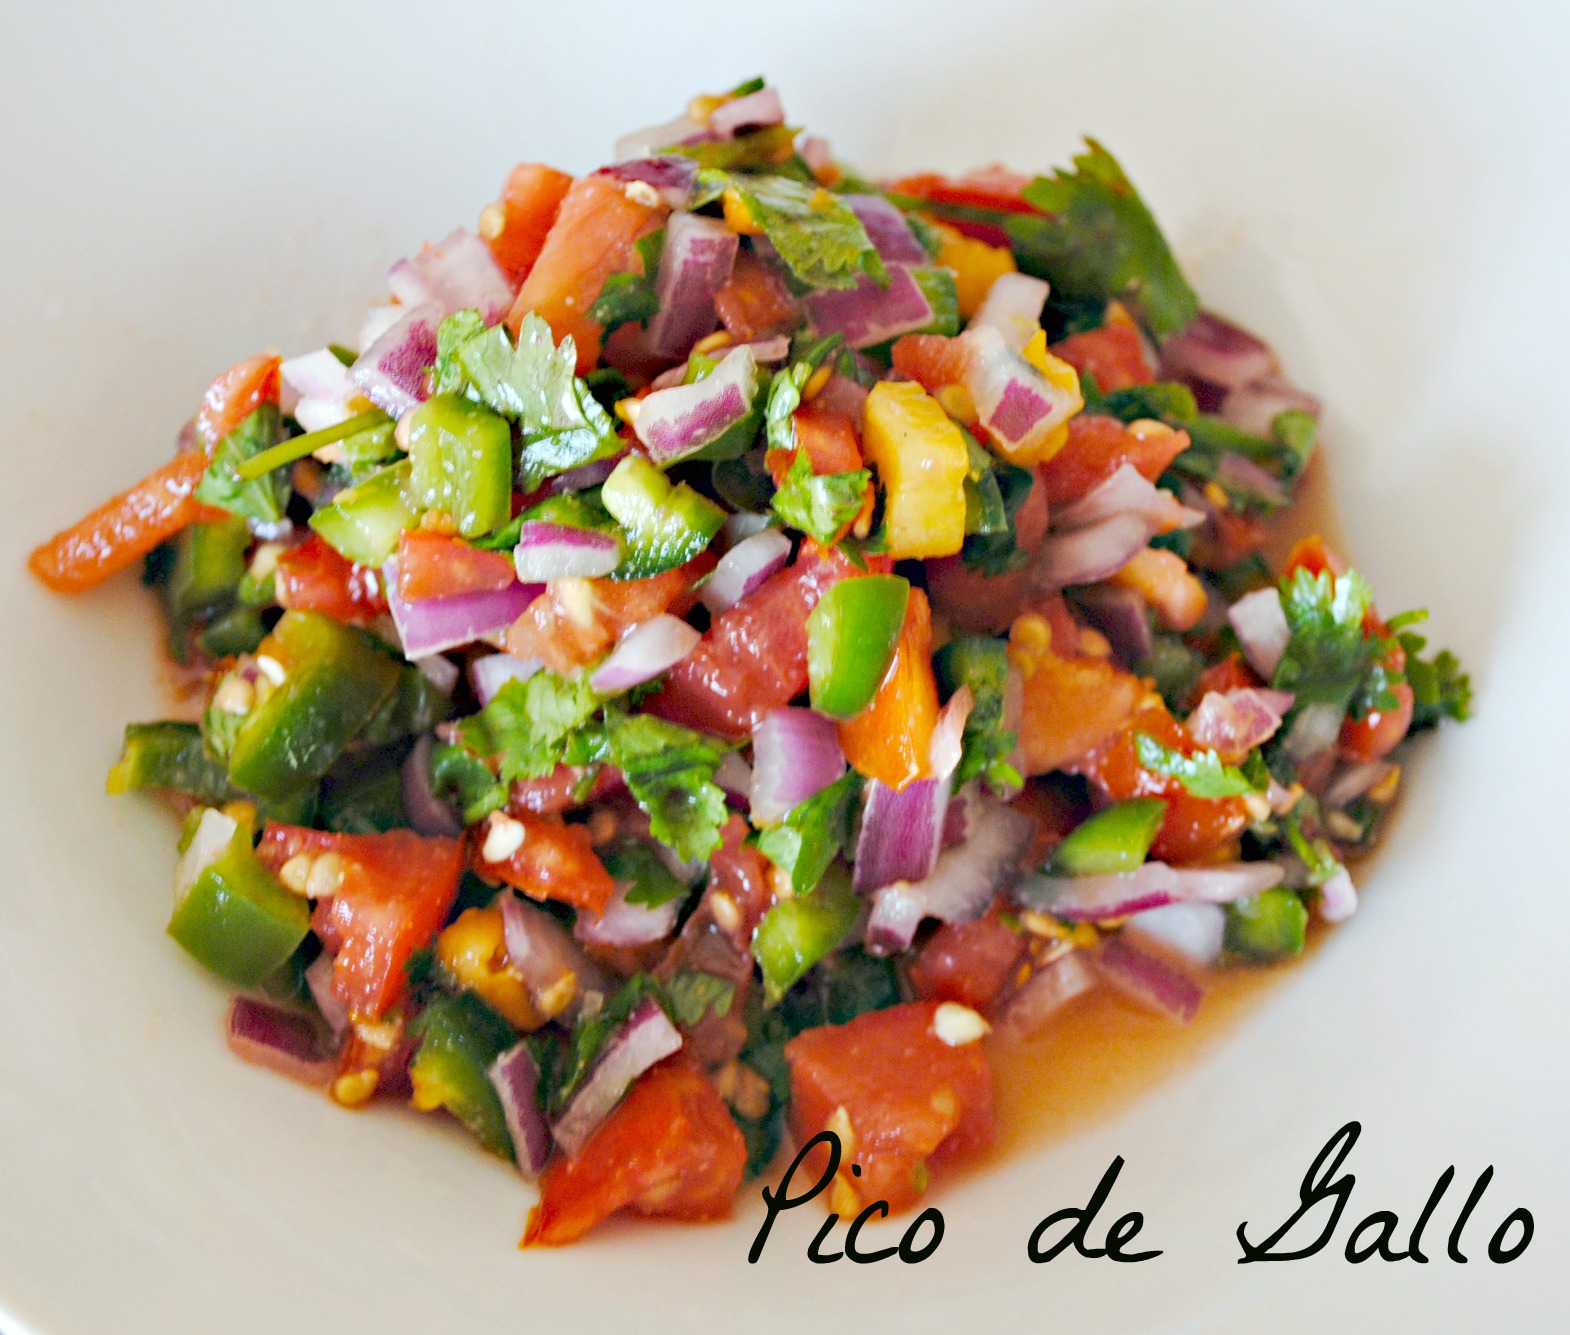 Fresh Homemade Pico de Gallo Recipe